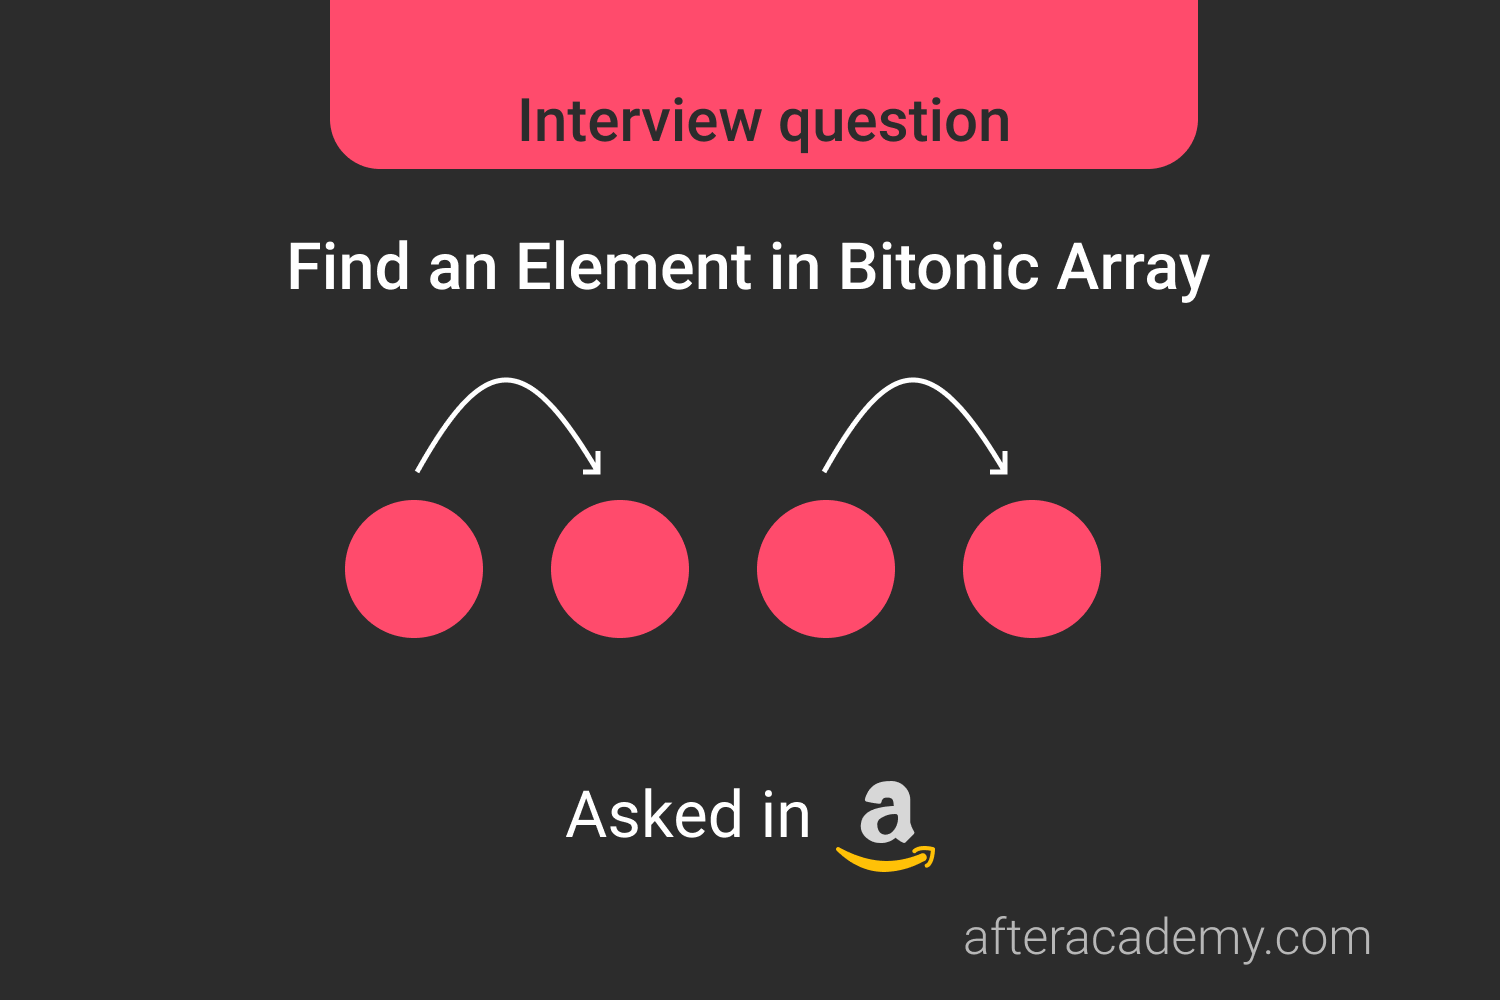 Find an Element In a Bitonic Array